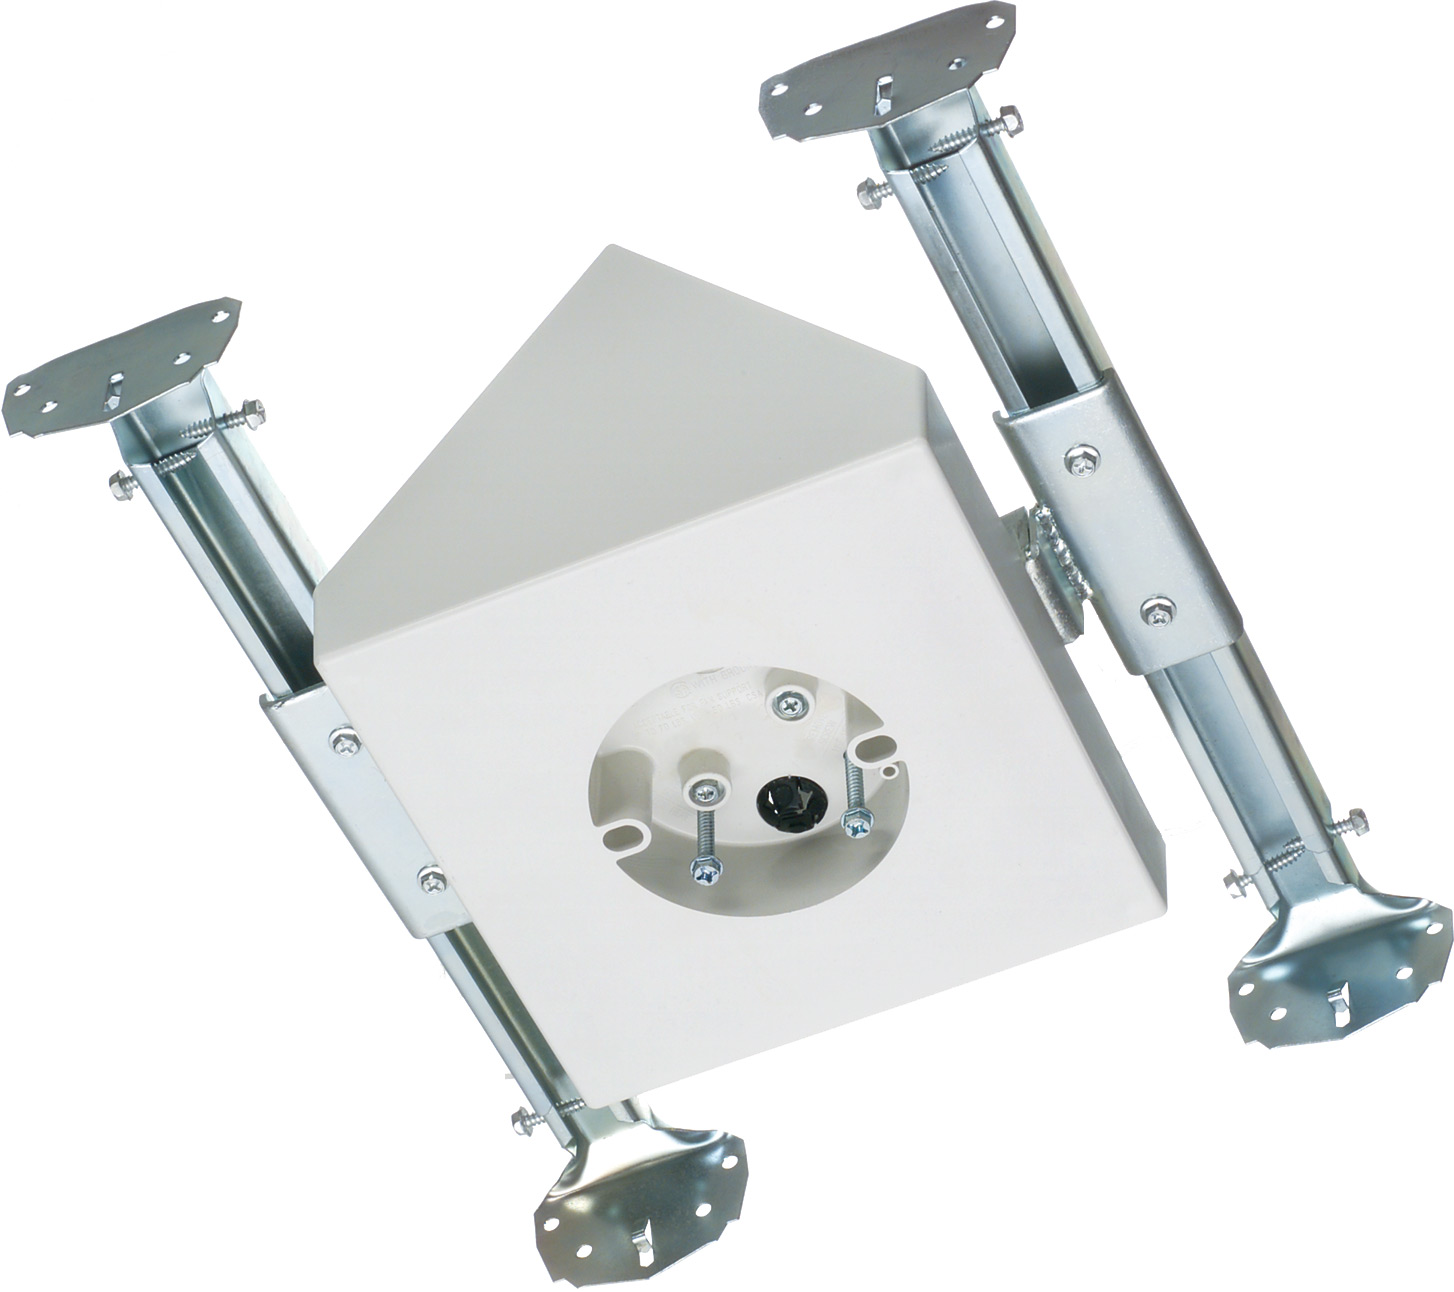 Vaulted ceiling fan mounting kit integralbook cathedral ceiling fans mount to give your a healthy suppport aloadofball Gallery